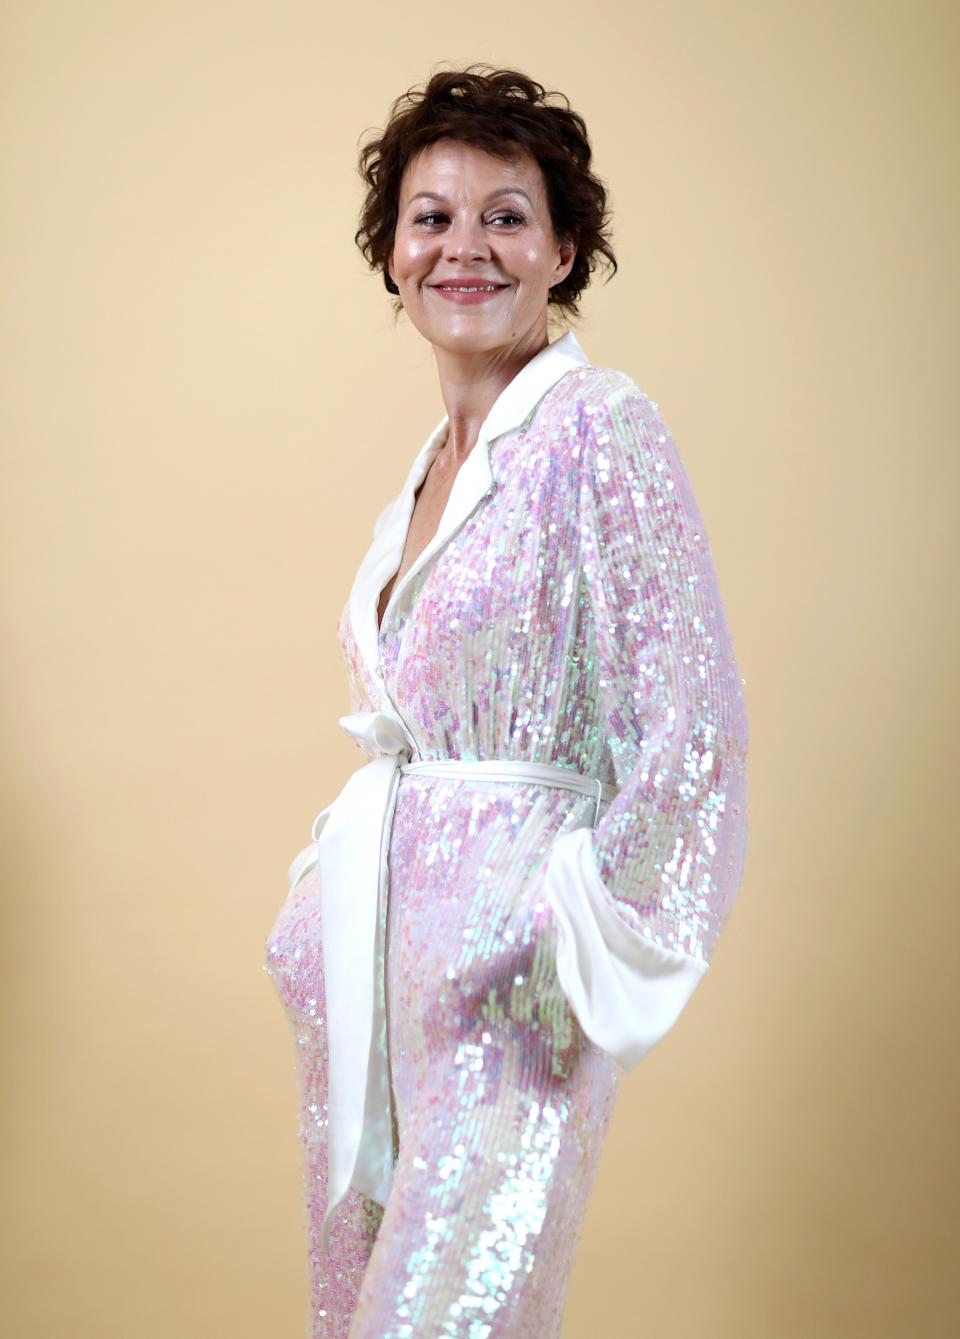 Helen McCrory backstage at London Fashion Week in 2018 (Photo: Tim Whitby/BFC via Getty Images)